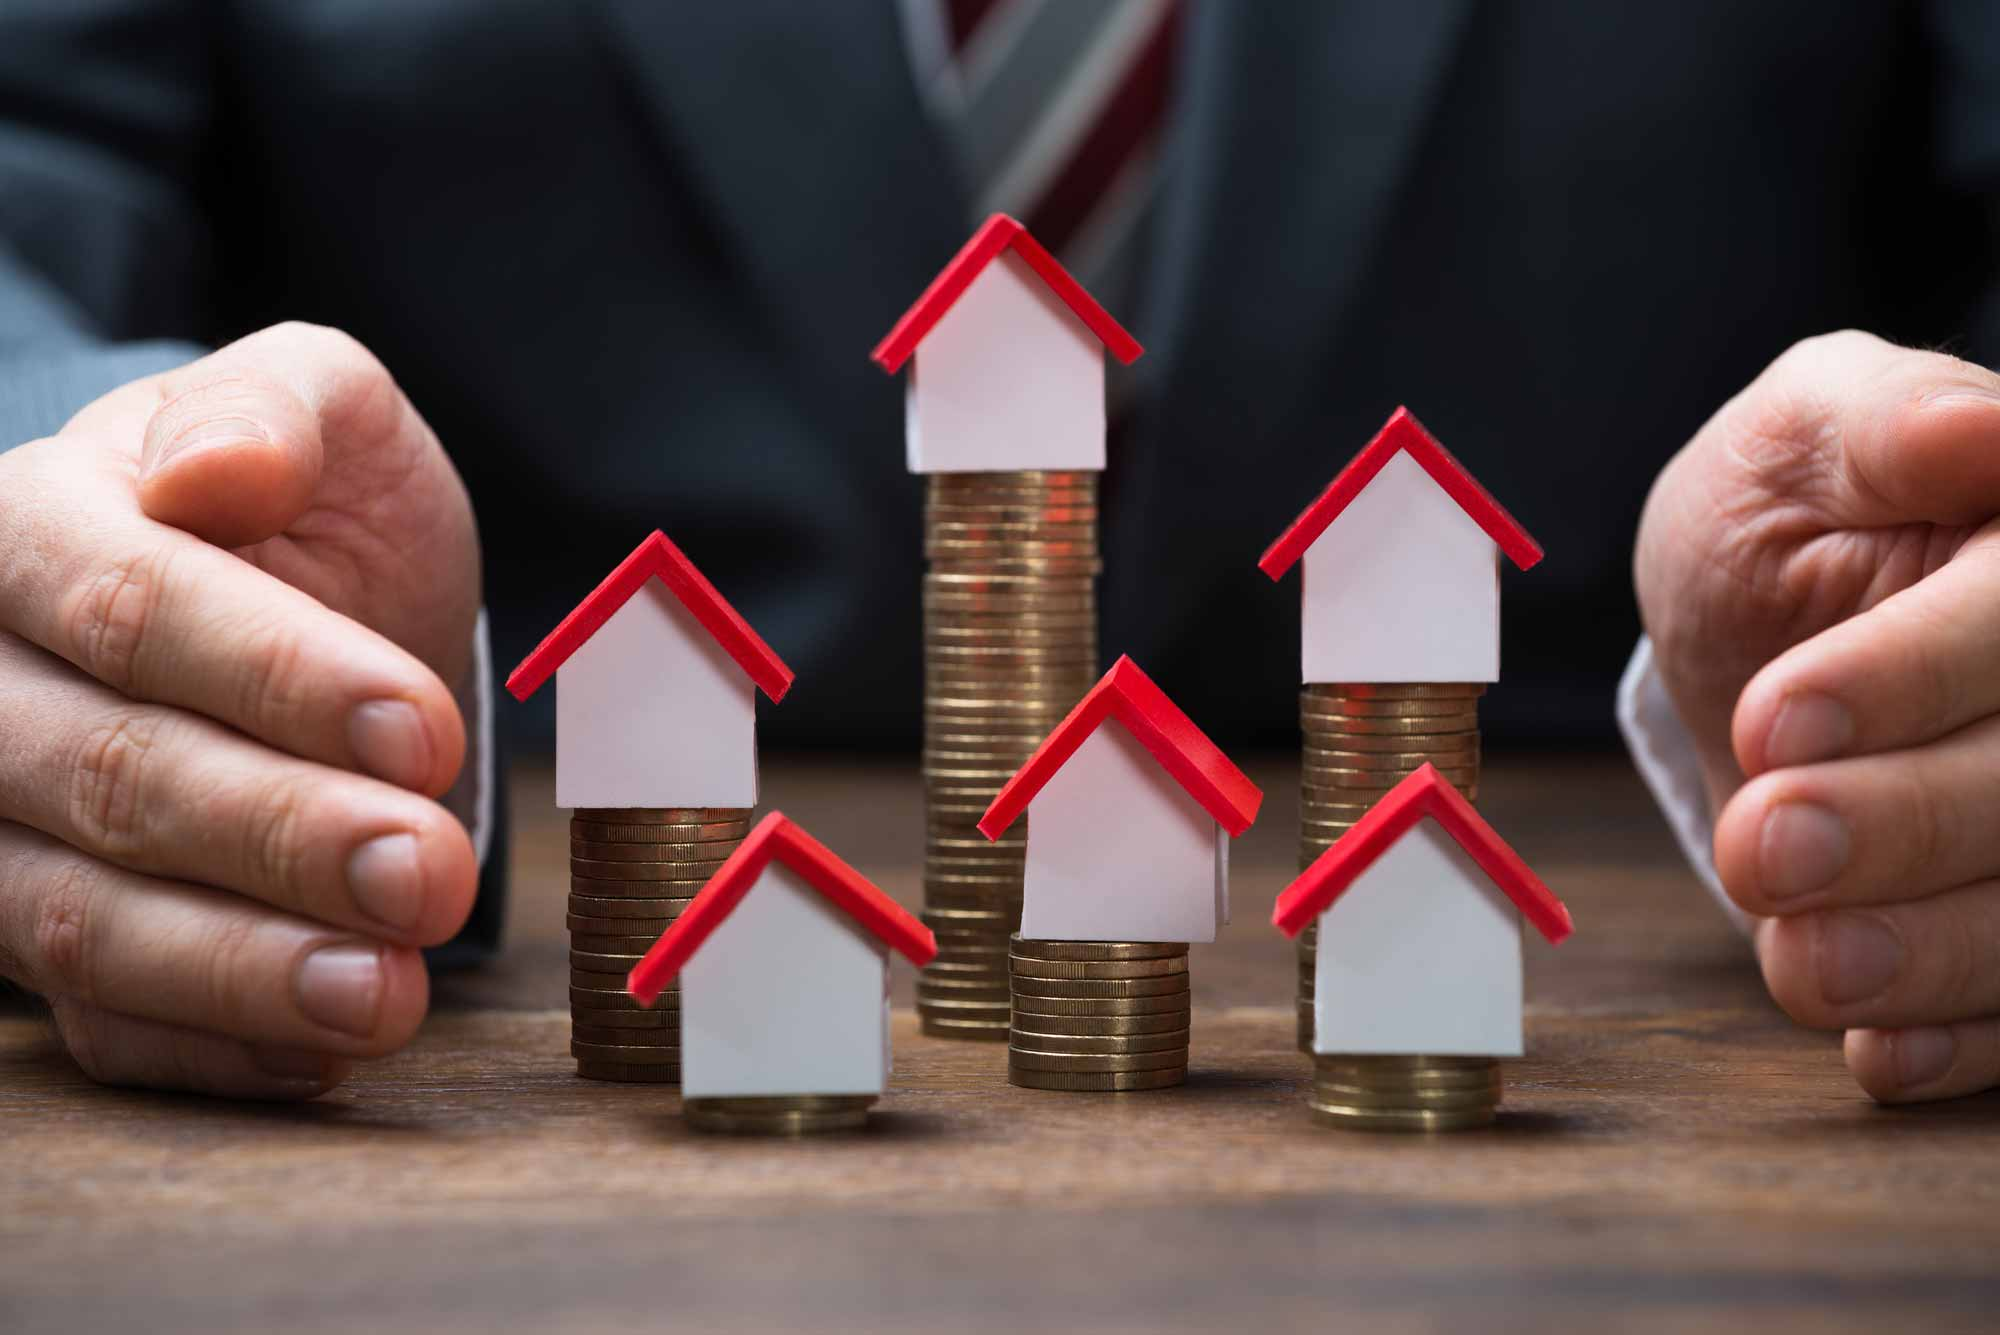 Will the high auction clearance rates really lead to double digit capital growth in property values?